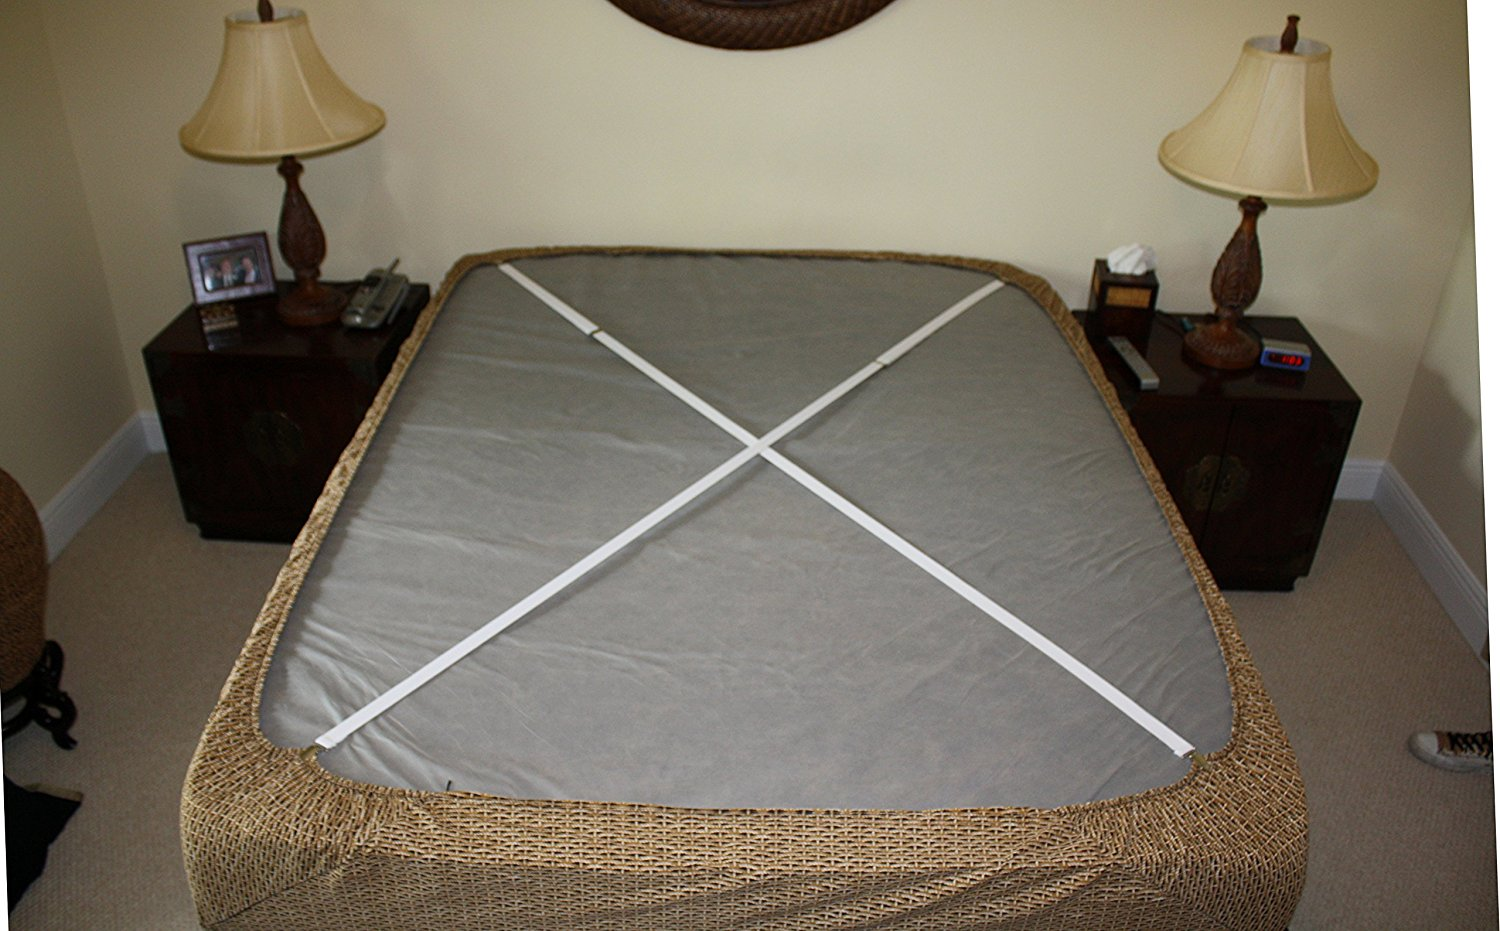 How To Keep Mattress From Sliding The Ultimate Guide For